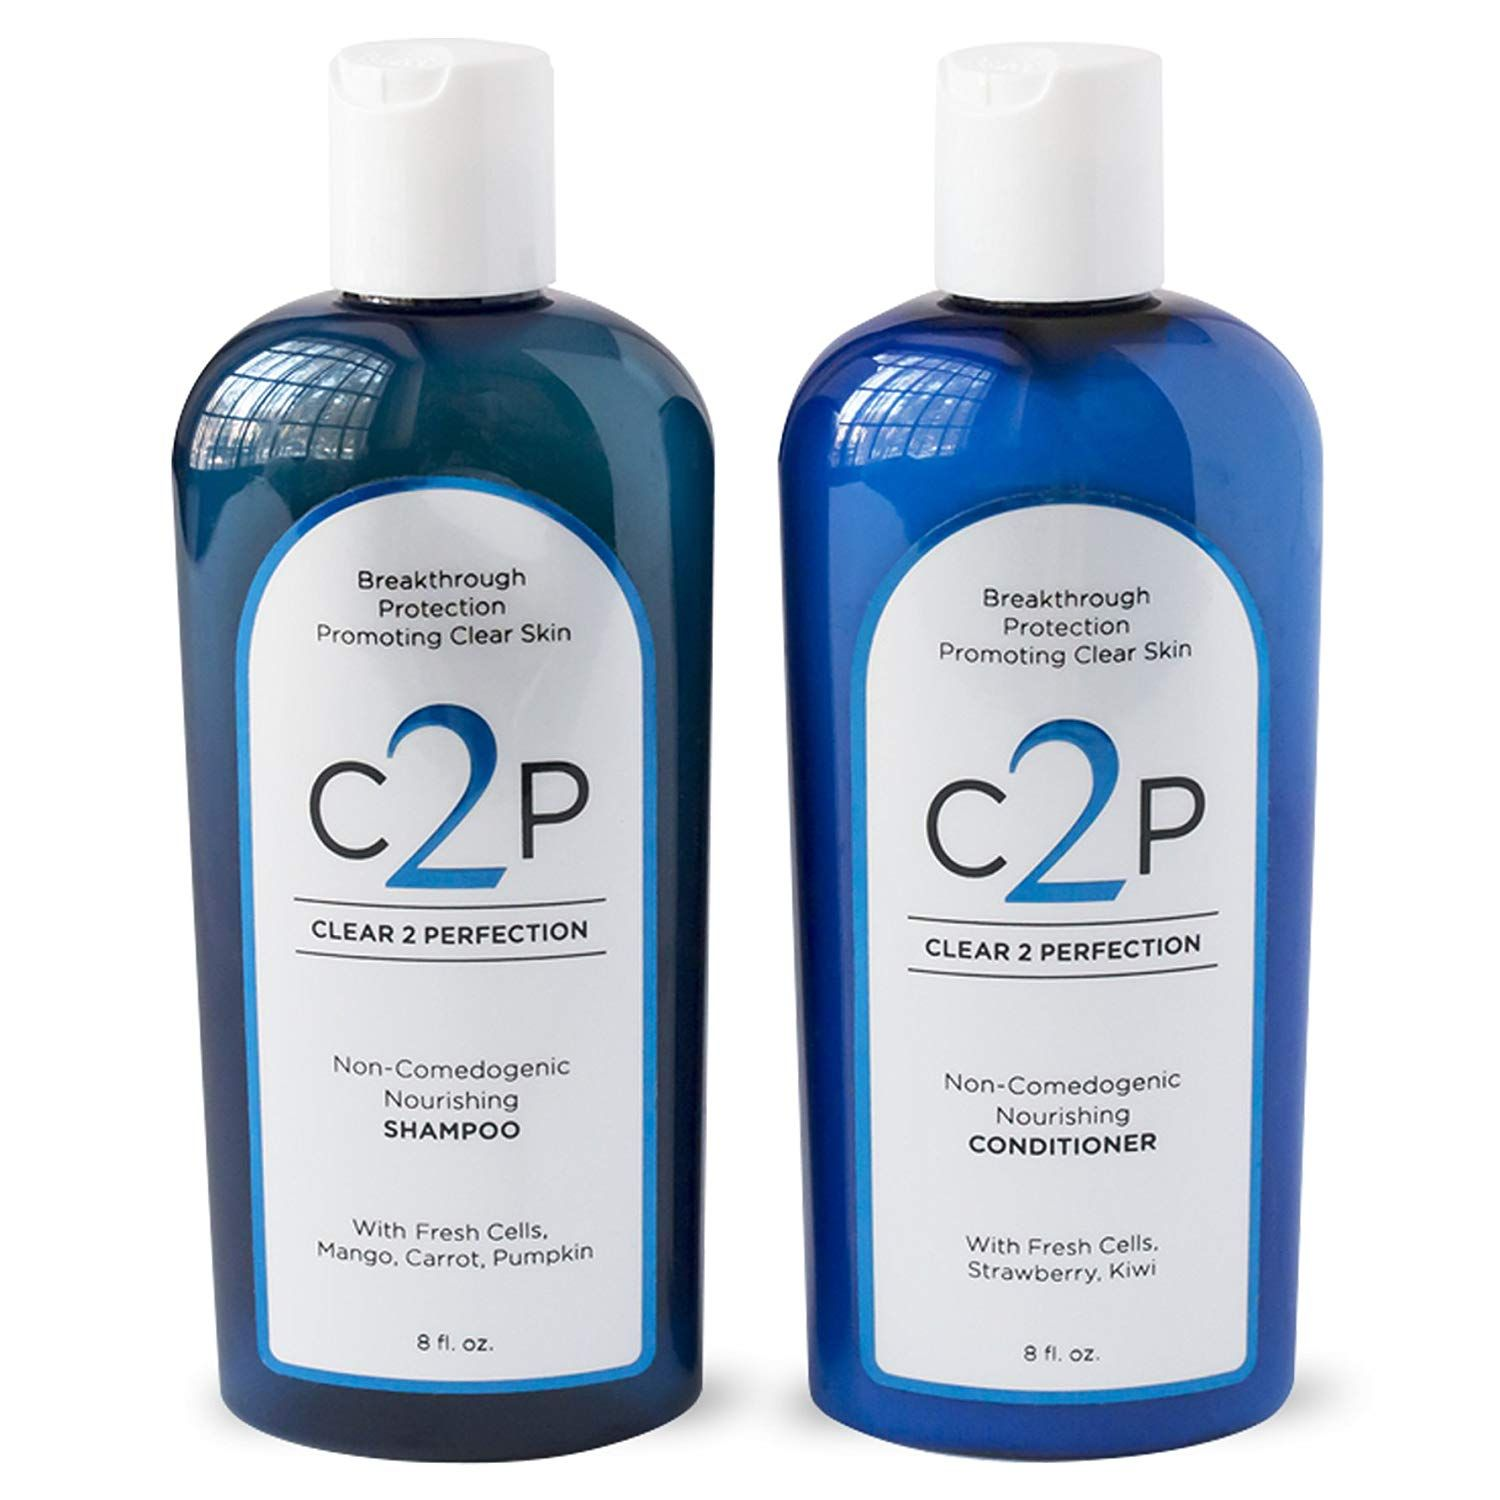 Clear 2 Perfection Shampoo and Conditioner Shampoo